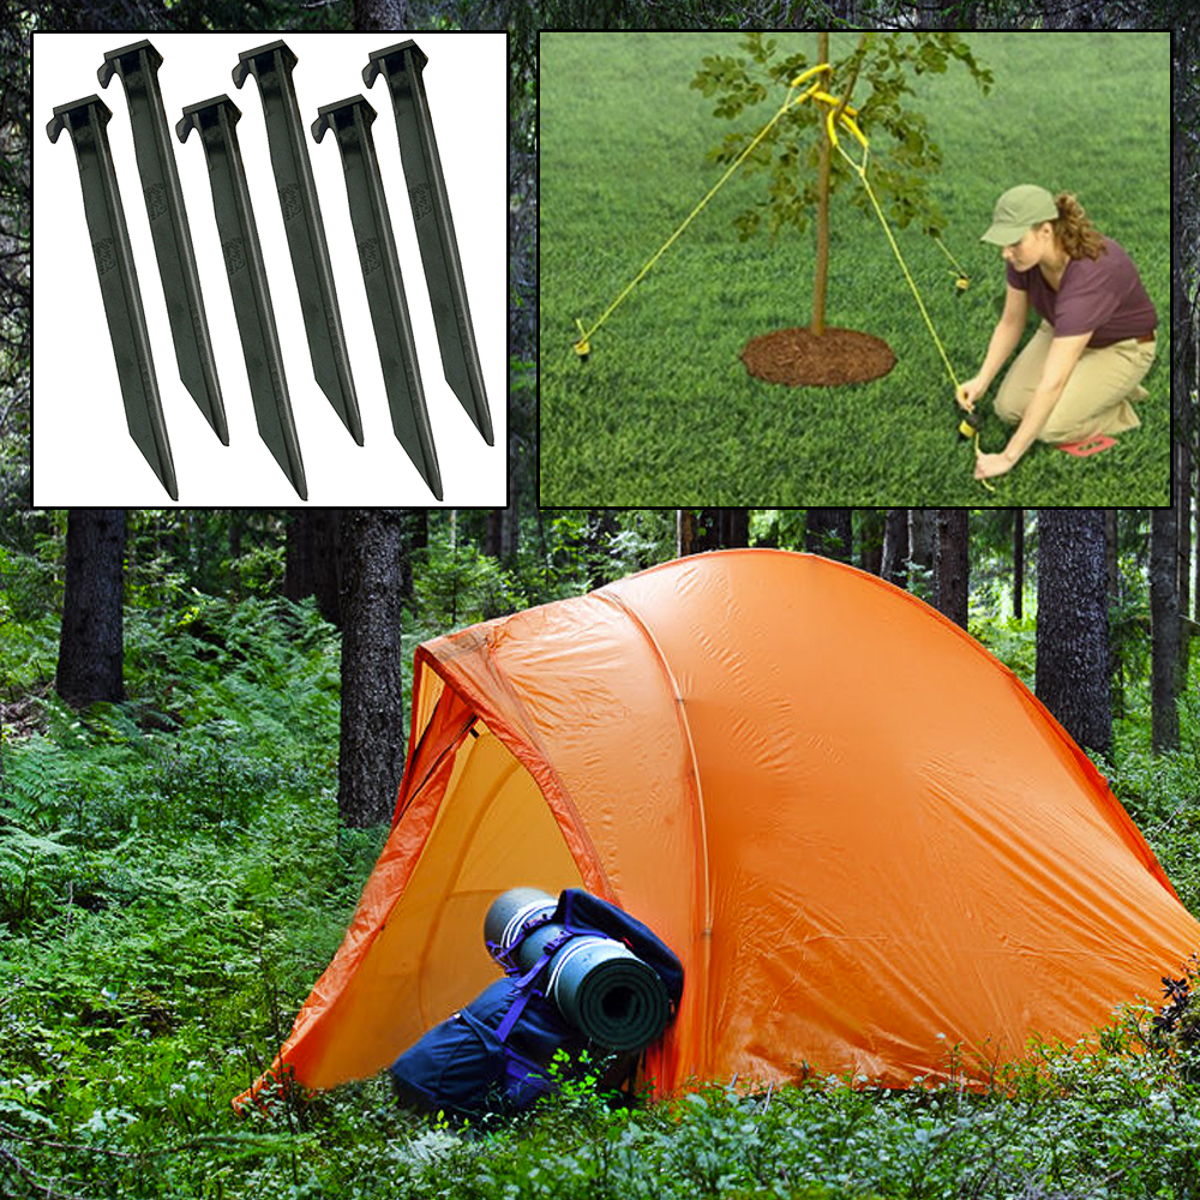 6pk Large Plastic Outdoor Stakes C&ing Secure Support Tents Fences Ropes Signs & 6pk Large Plastic Outdoor Stakes Camping Secure Support Tents ...